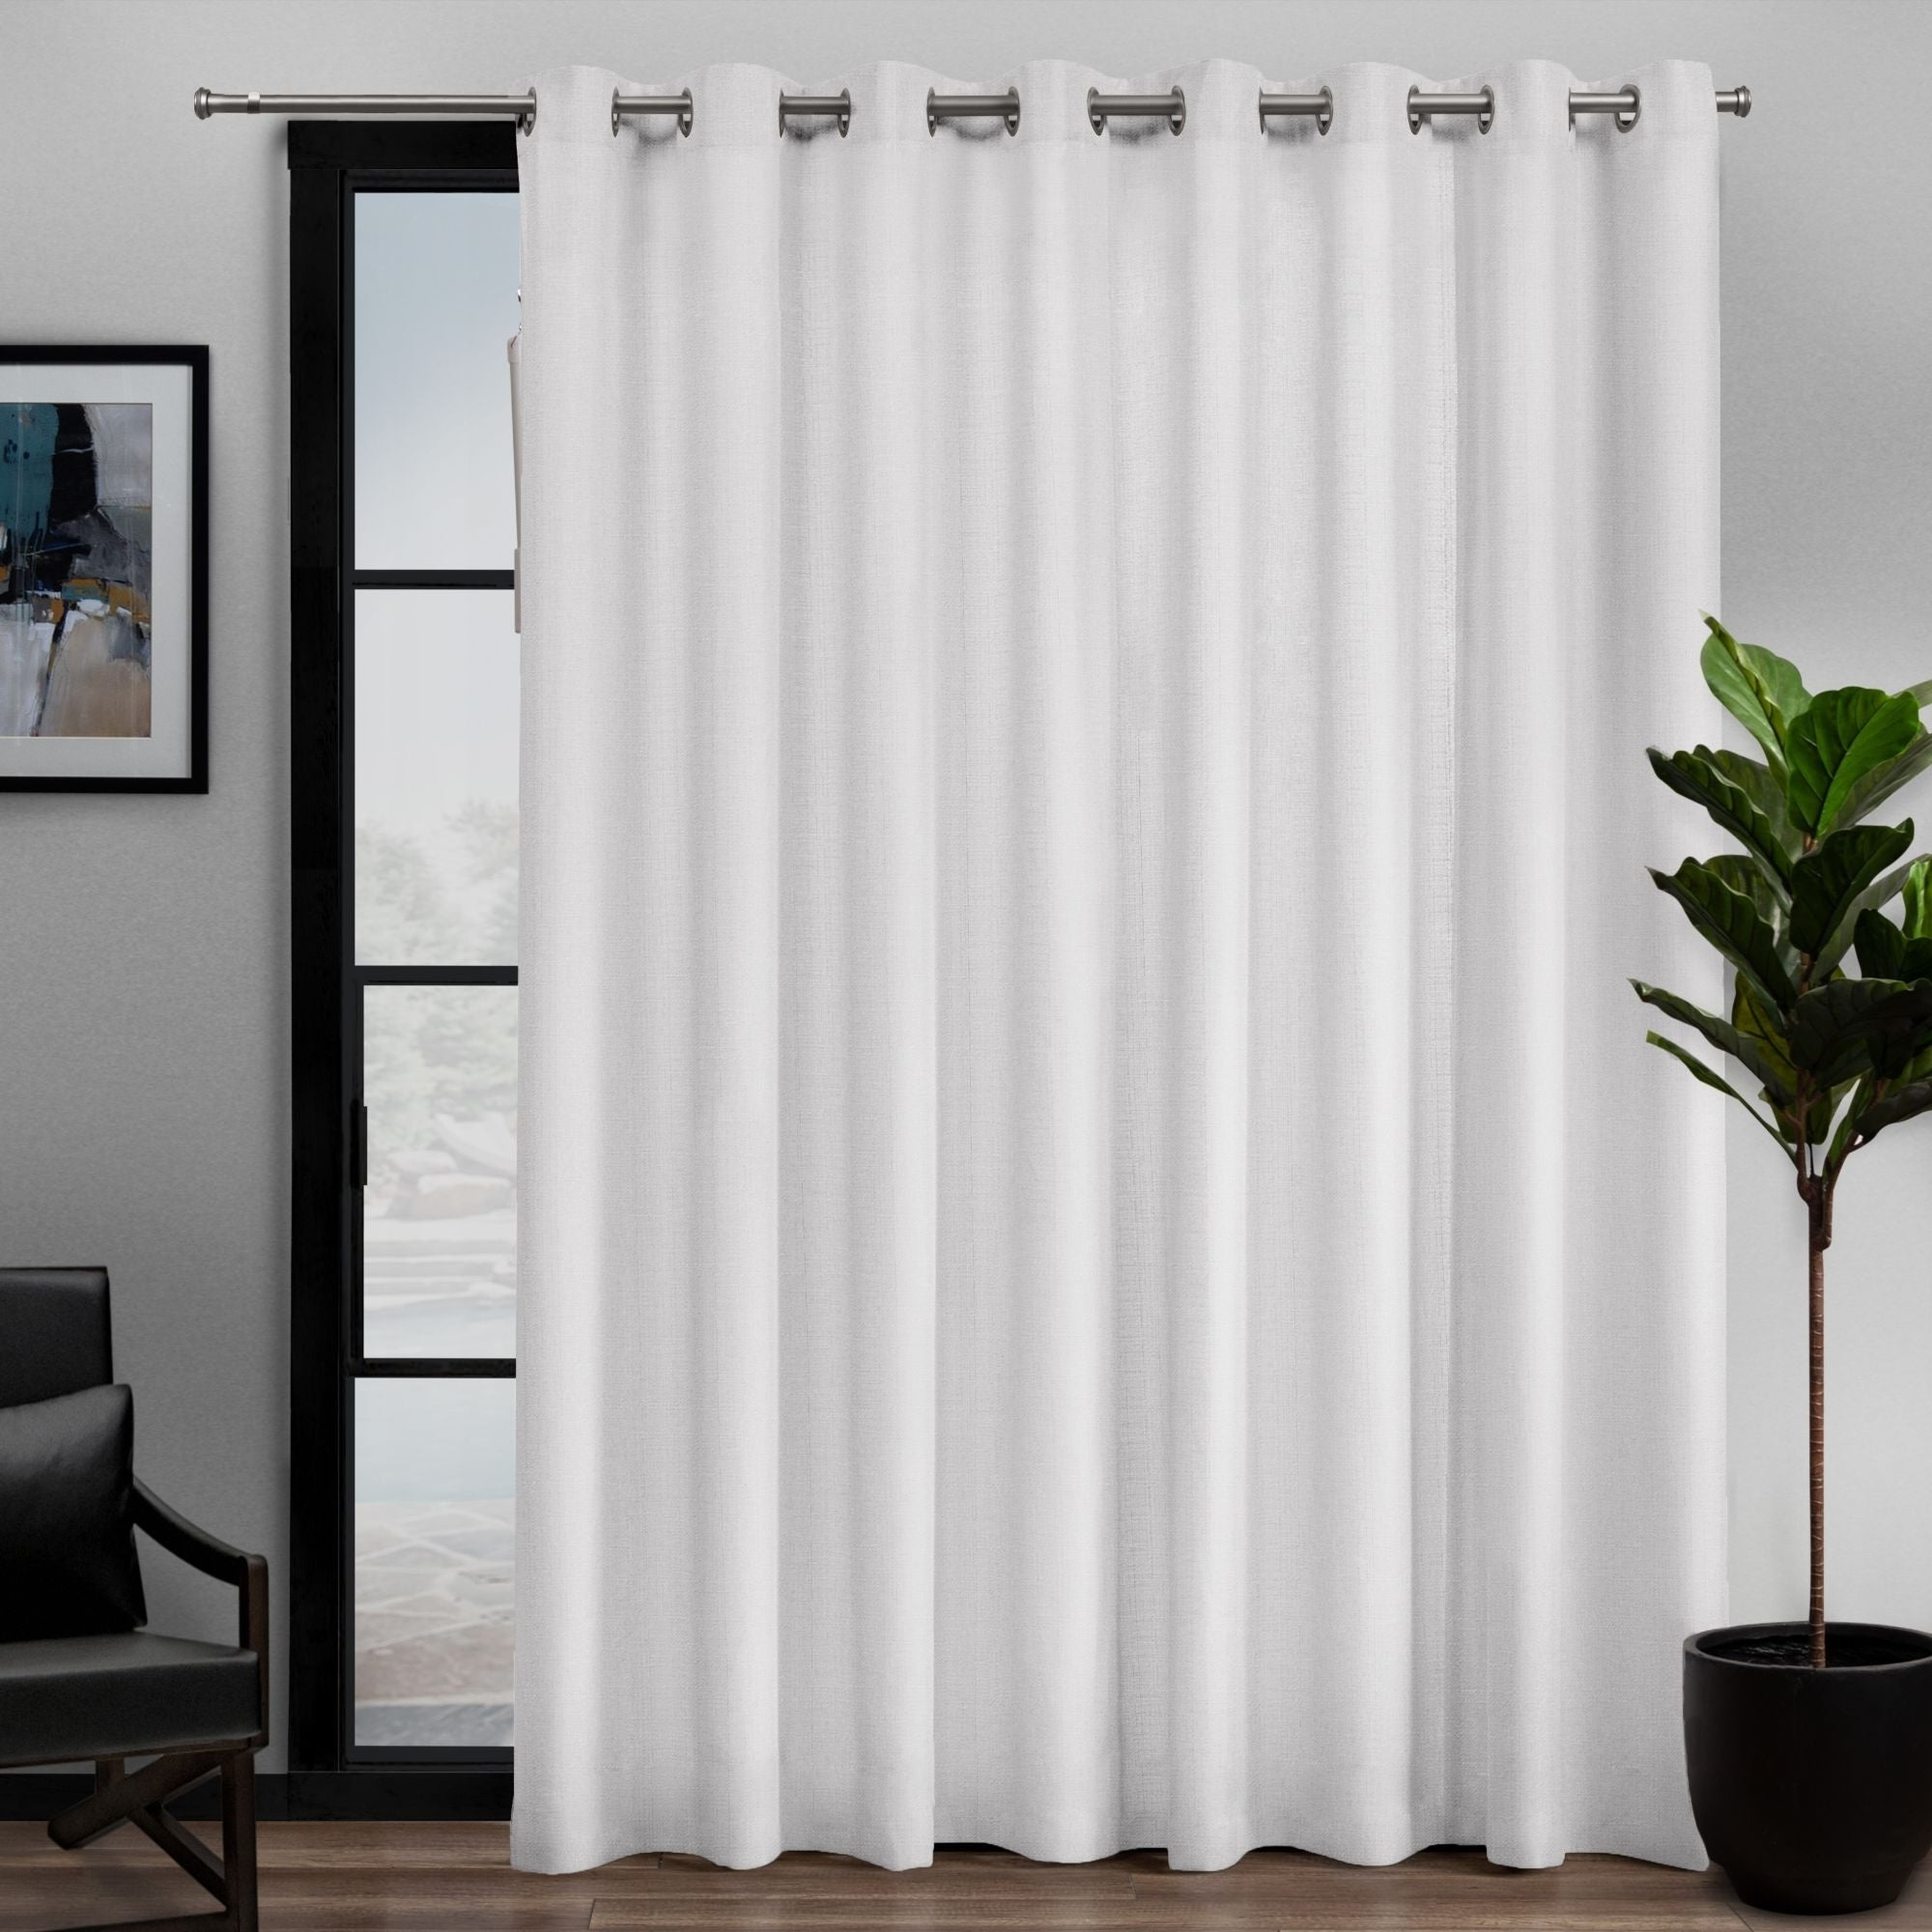 Davis Patio Grommet Top Single Curtain Panels In Most Recent Ati Home Loha Patio Grommet Top Single Curtain Panel – 108x (View 2 of 20)